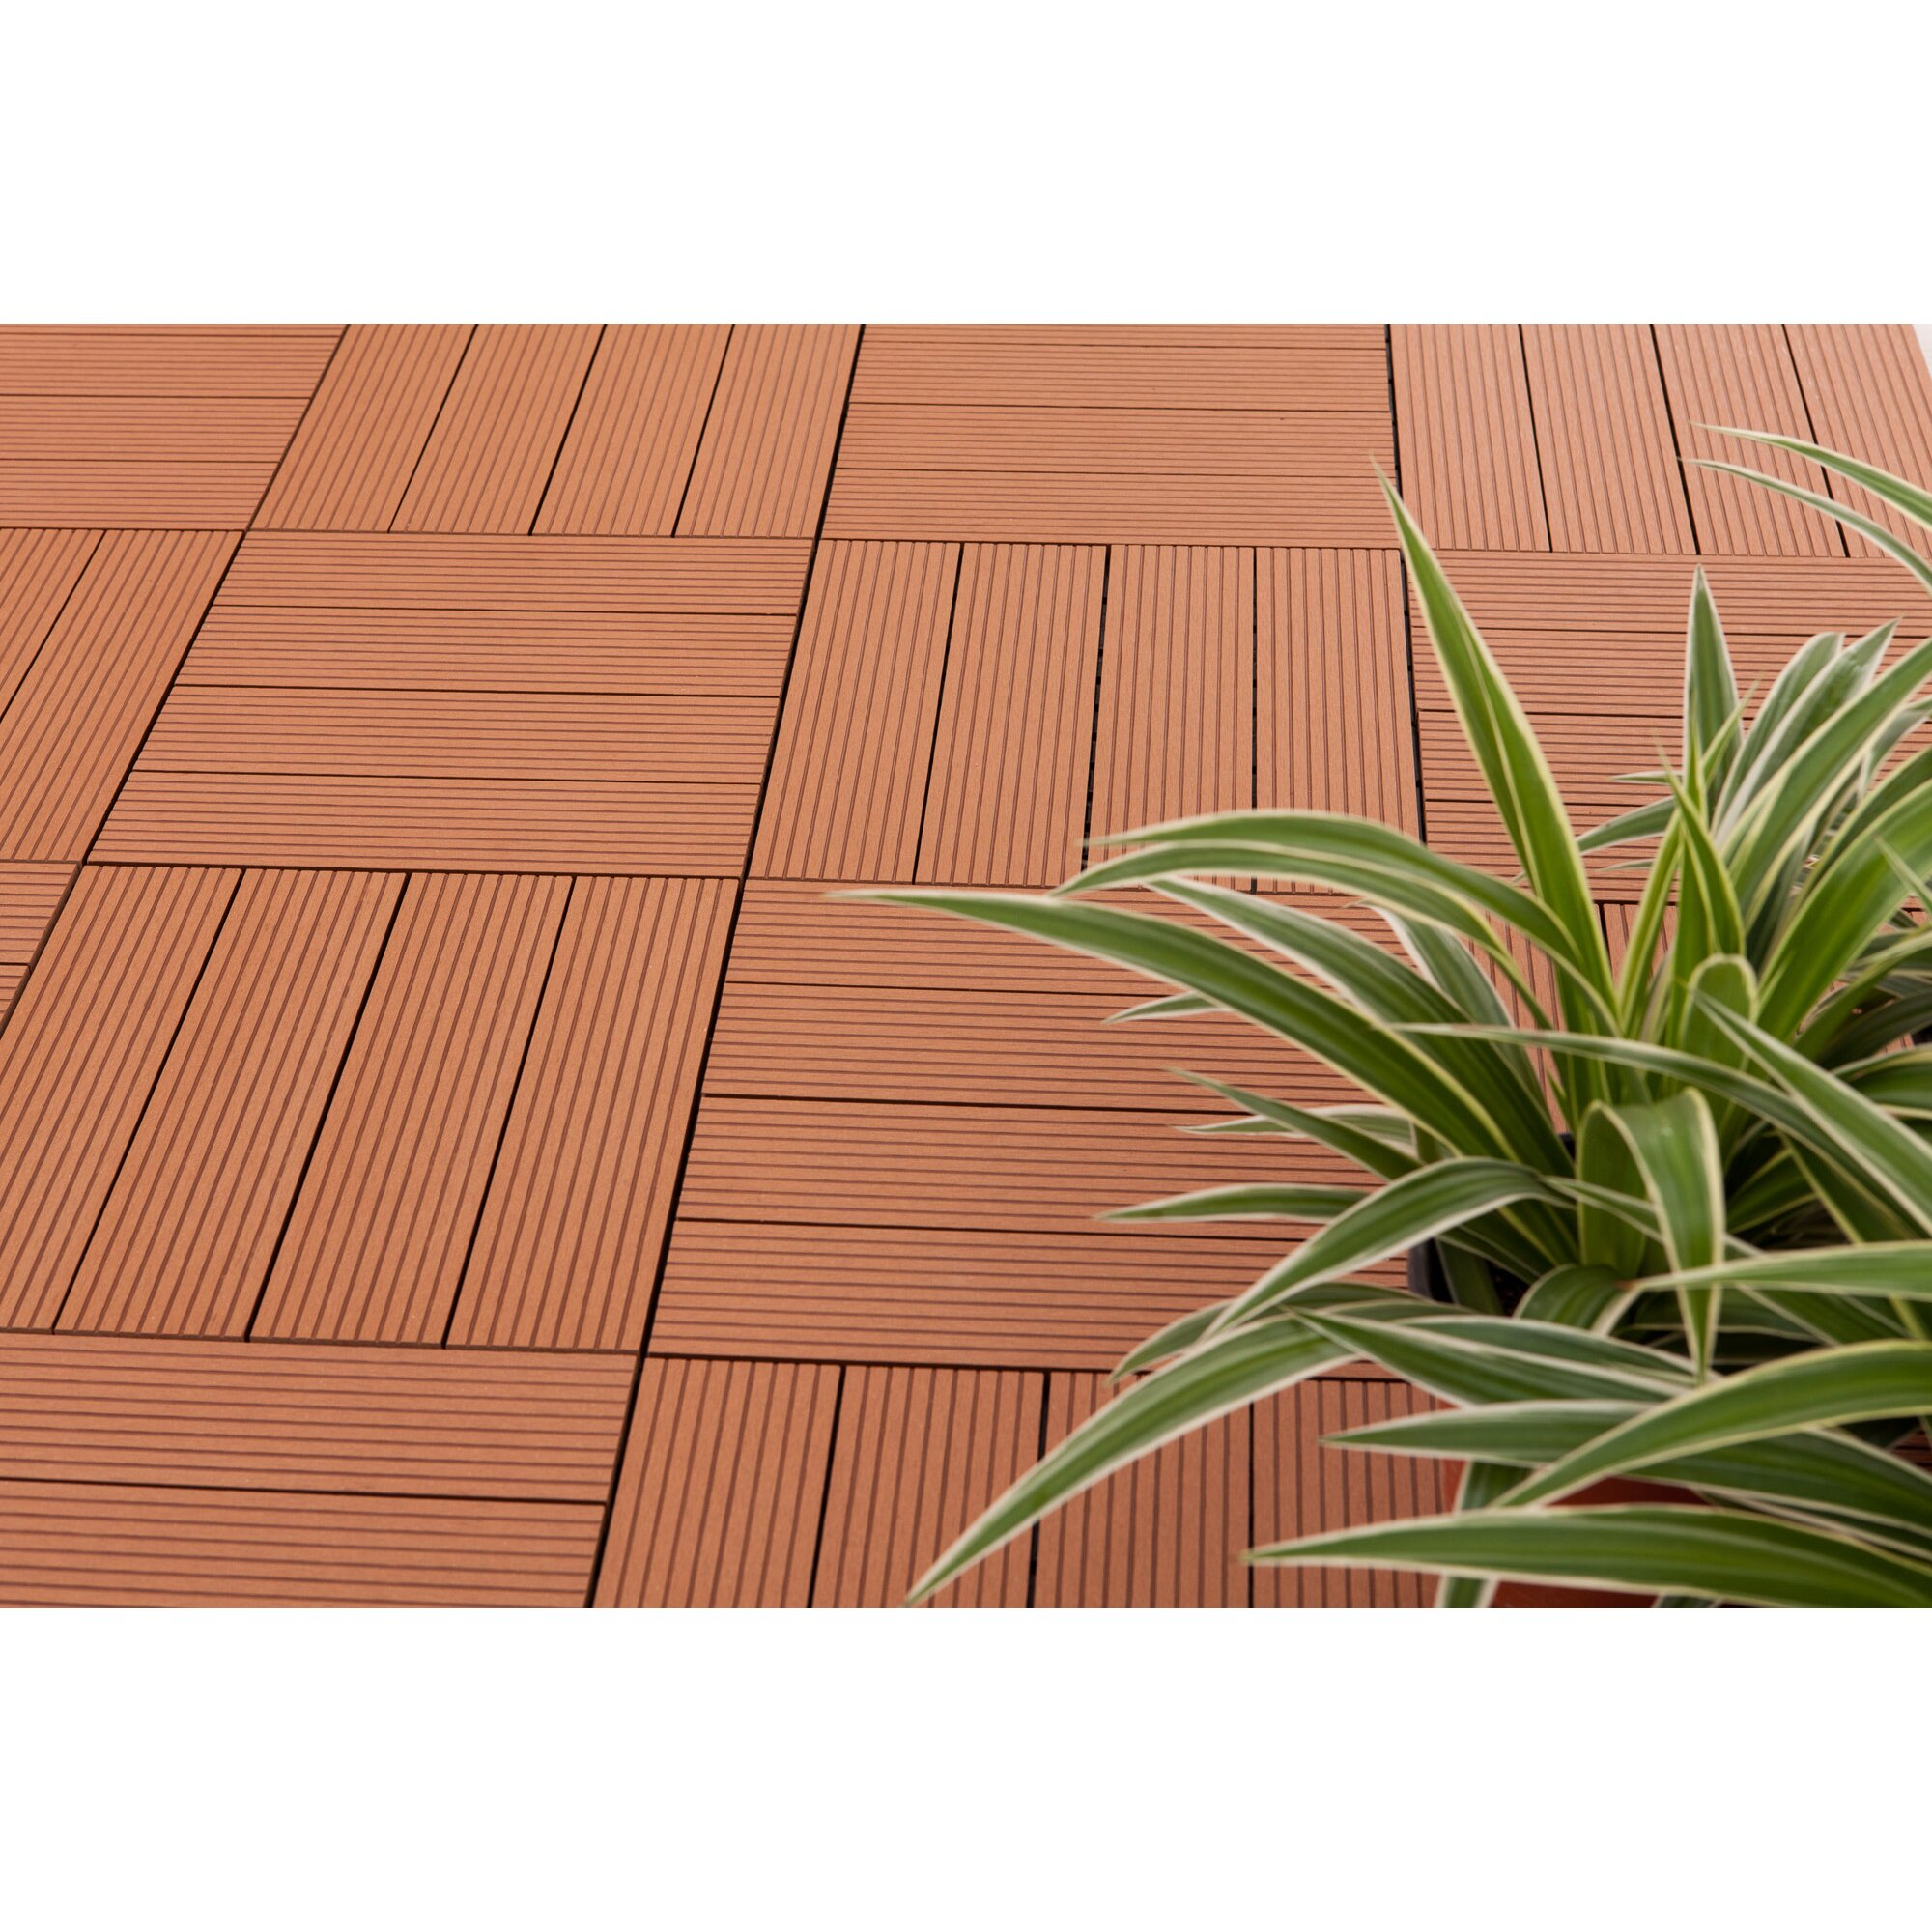 Teak Patio Flooring Tiles Westminster Decking Modern Vifah Composite